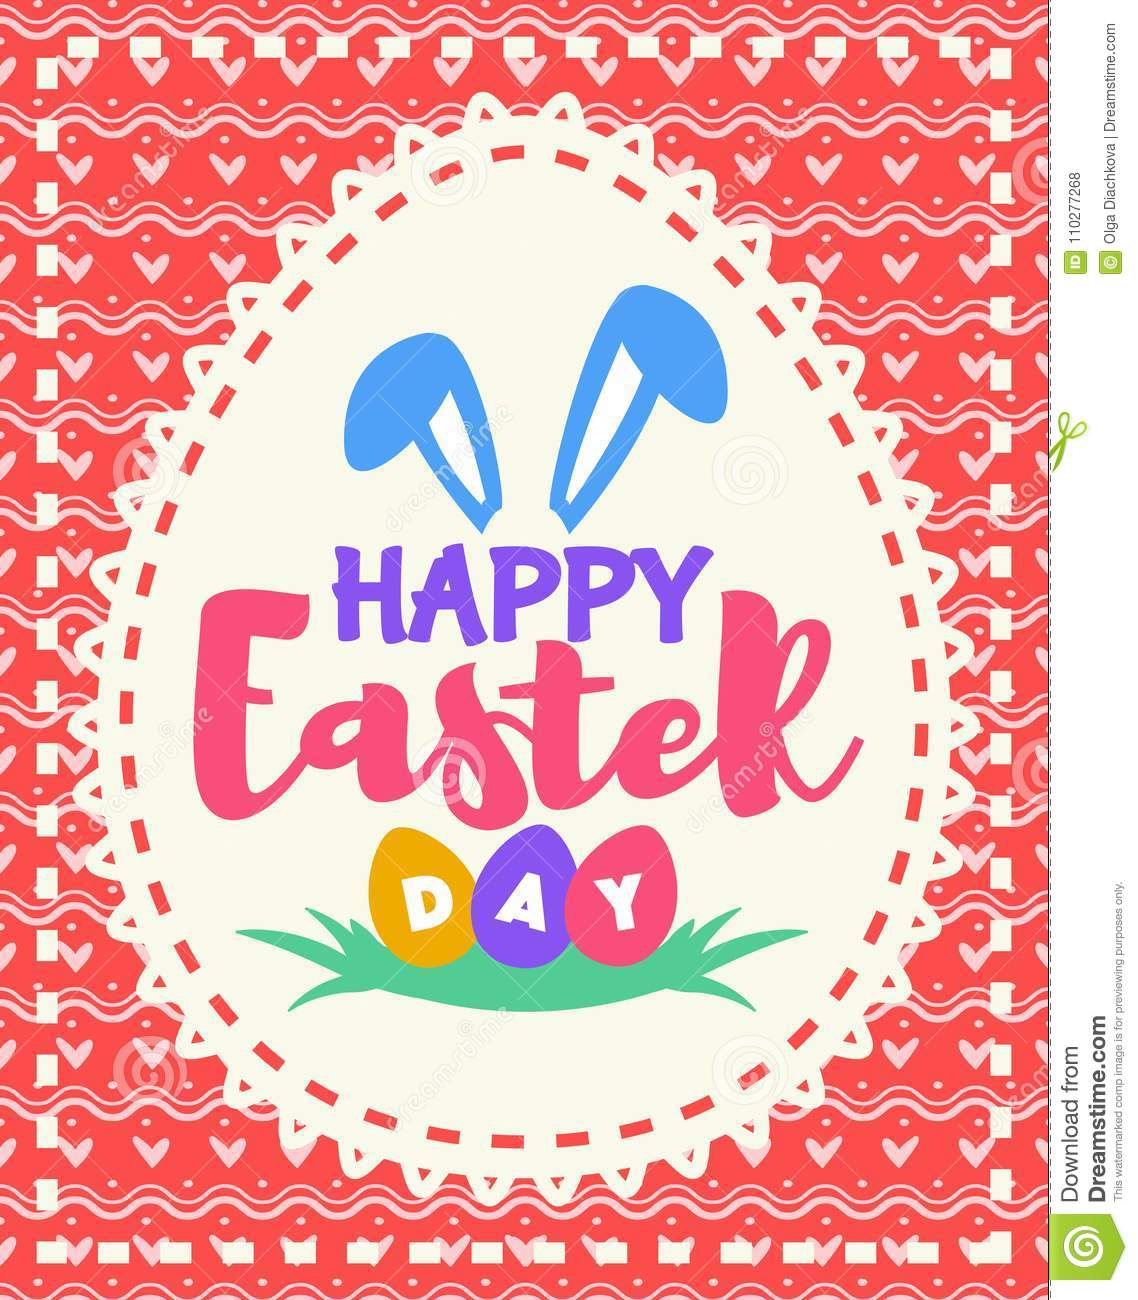 Vector Easter Greeting Card With Wish Happy Easter Day Colorful